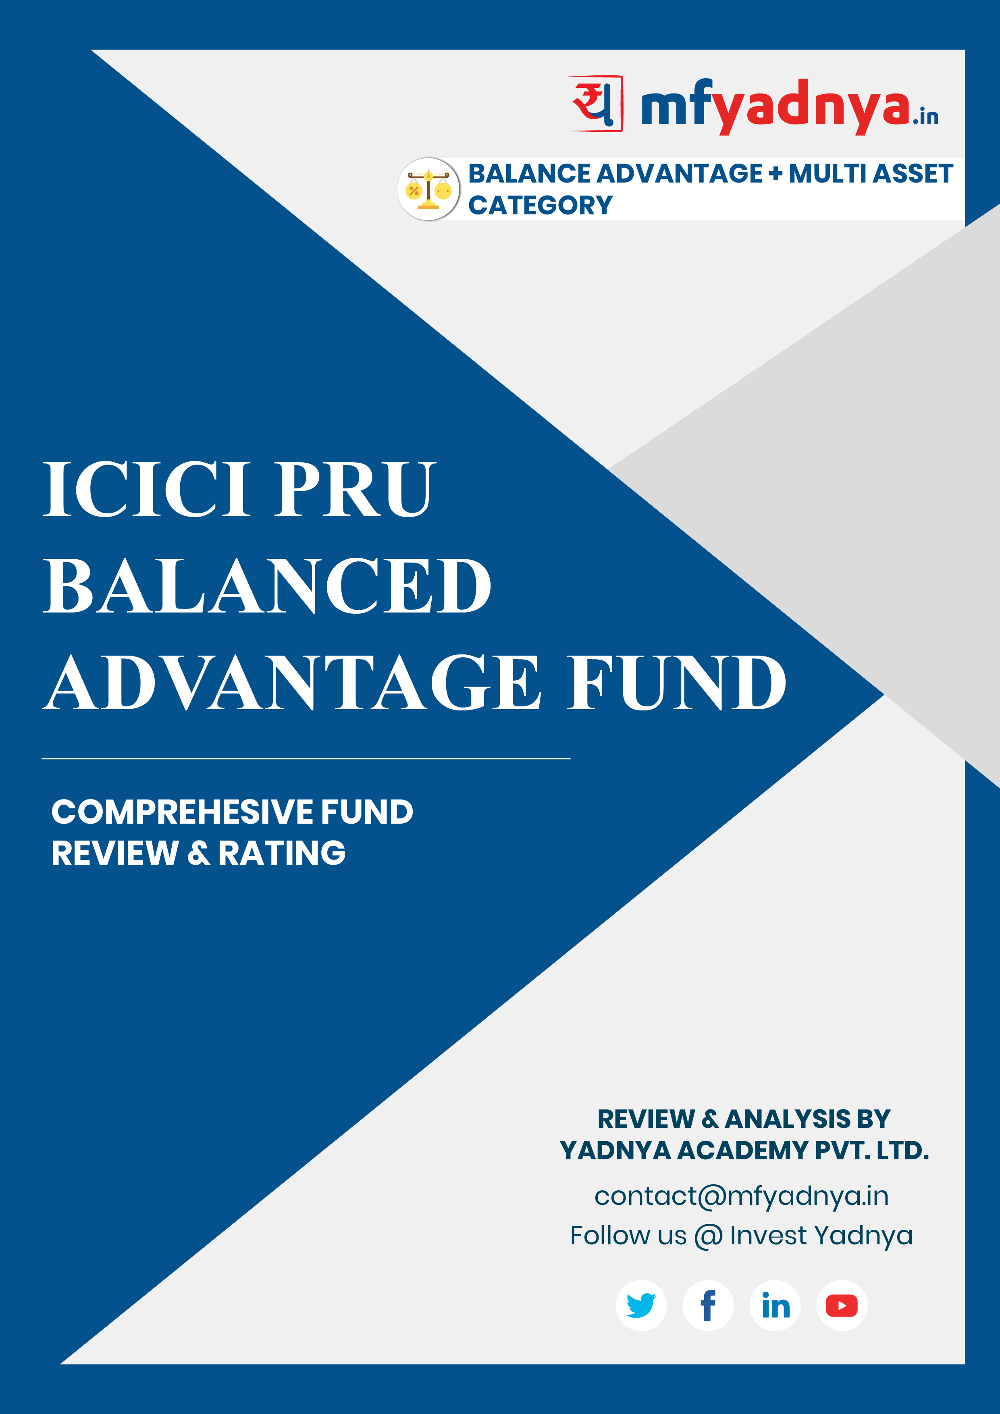 This e-book offers a comprehensive mutual fund review of ICICI Pru Balanced Advantage Fund . It reviews the fund's return, ratio, allocation etc. ✔ Detailed Mutual Fund Analysis ✔ Latest Research Reports